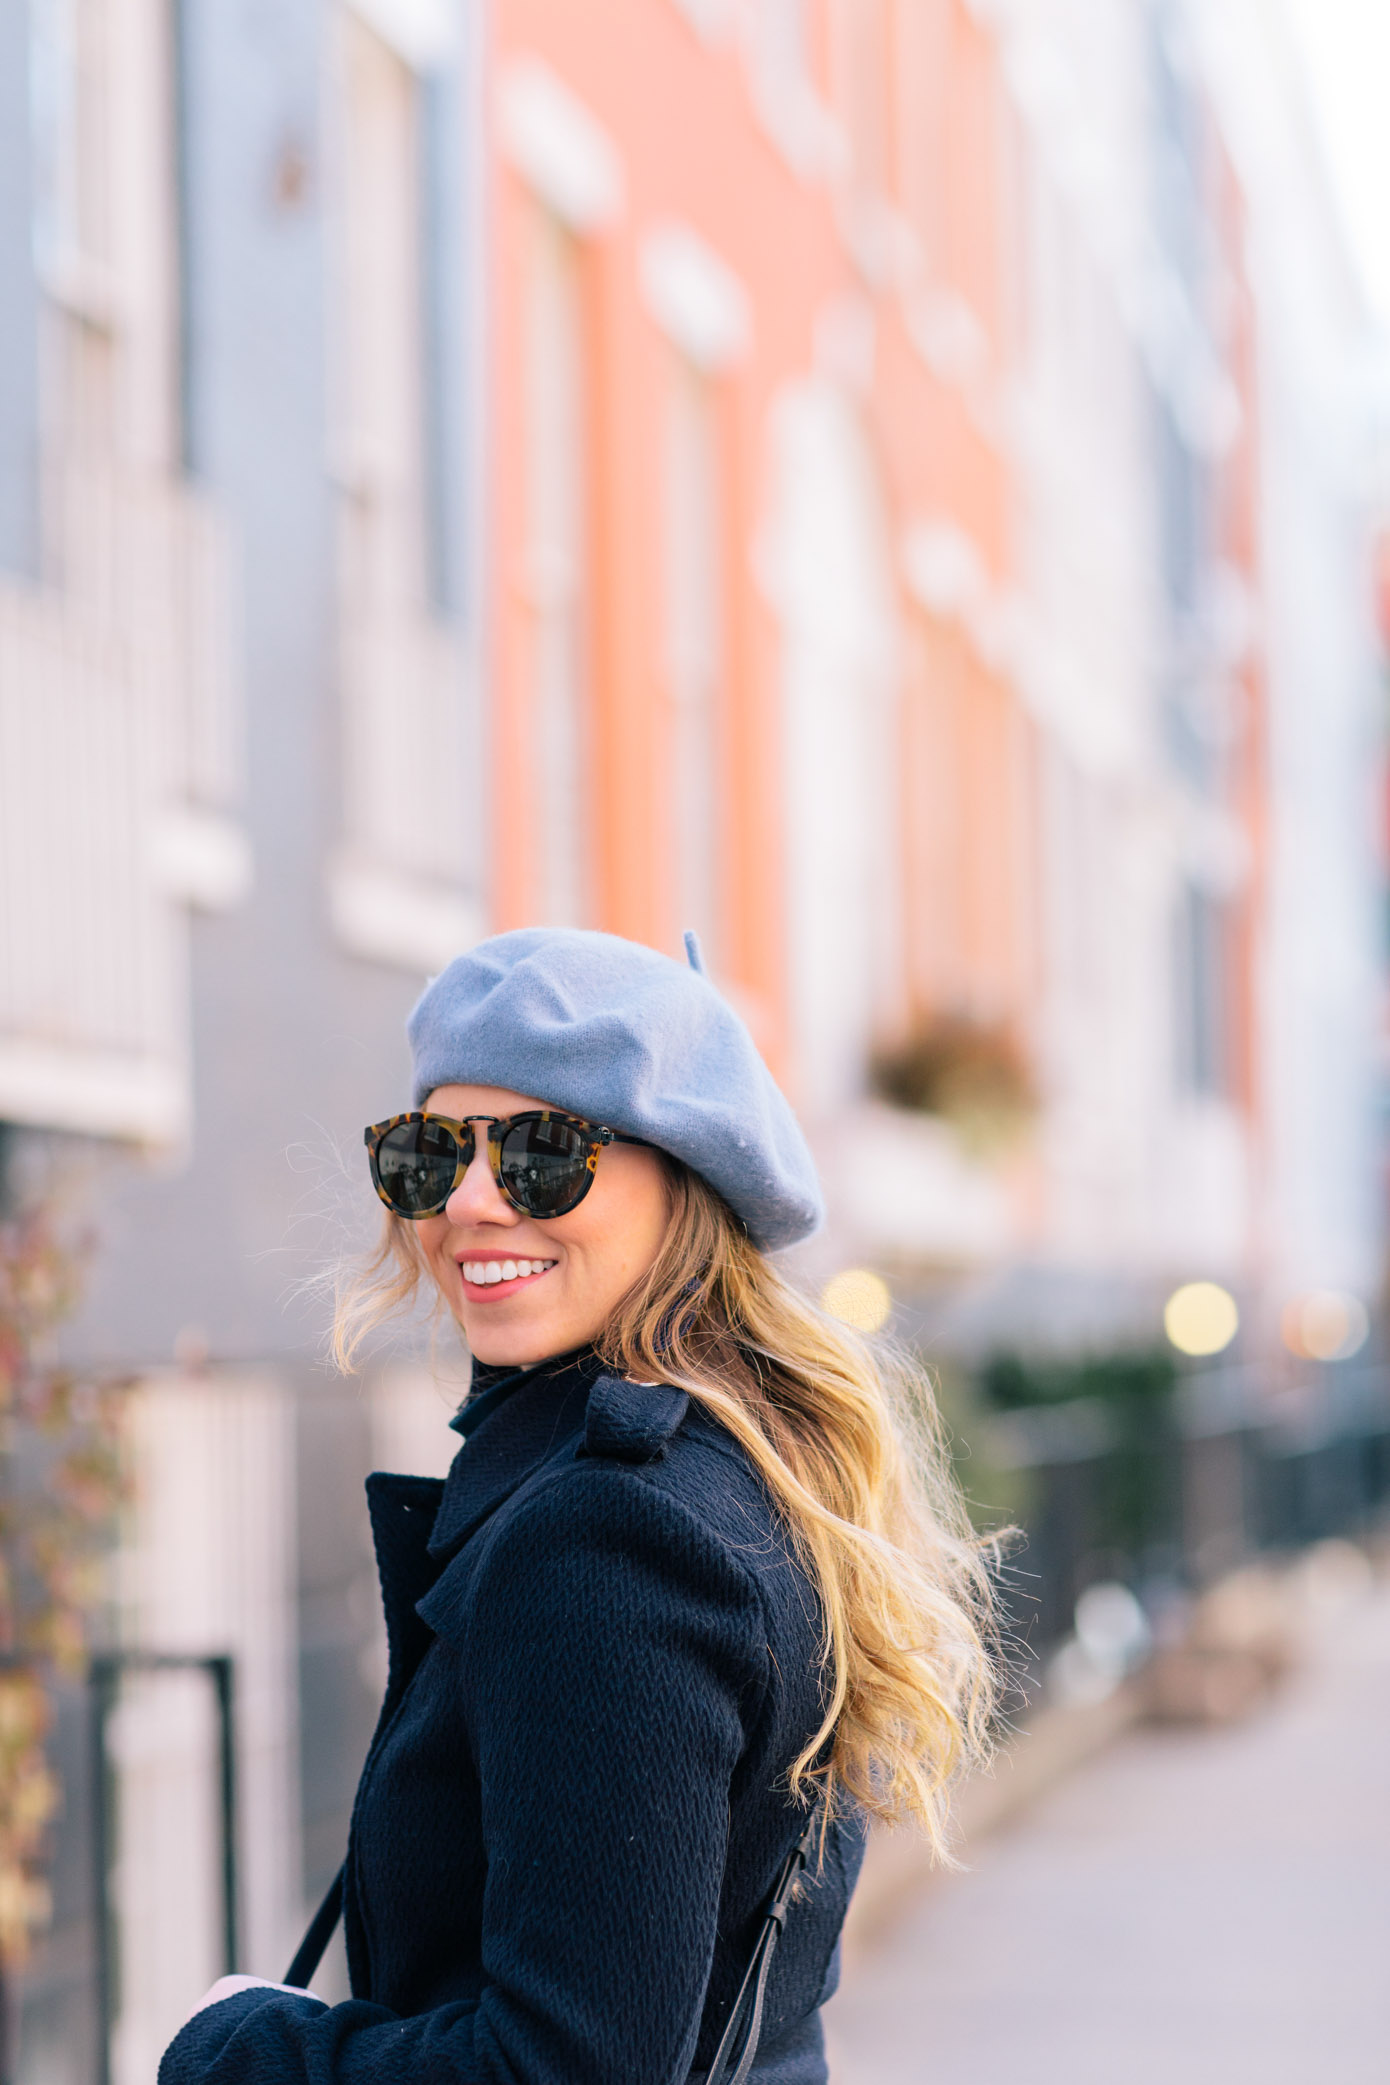 Blue Beret | How to Dress Like a Parisian this Winter | Louella Reese Life & Style Blog